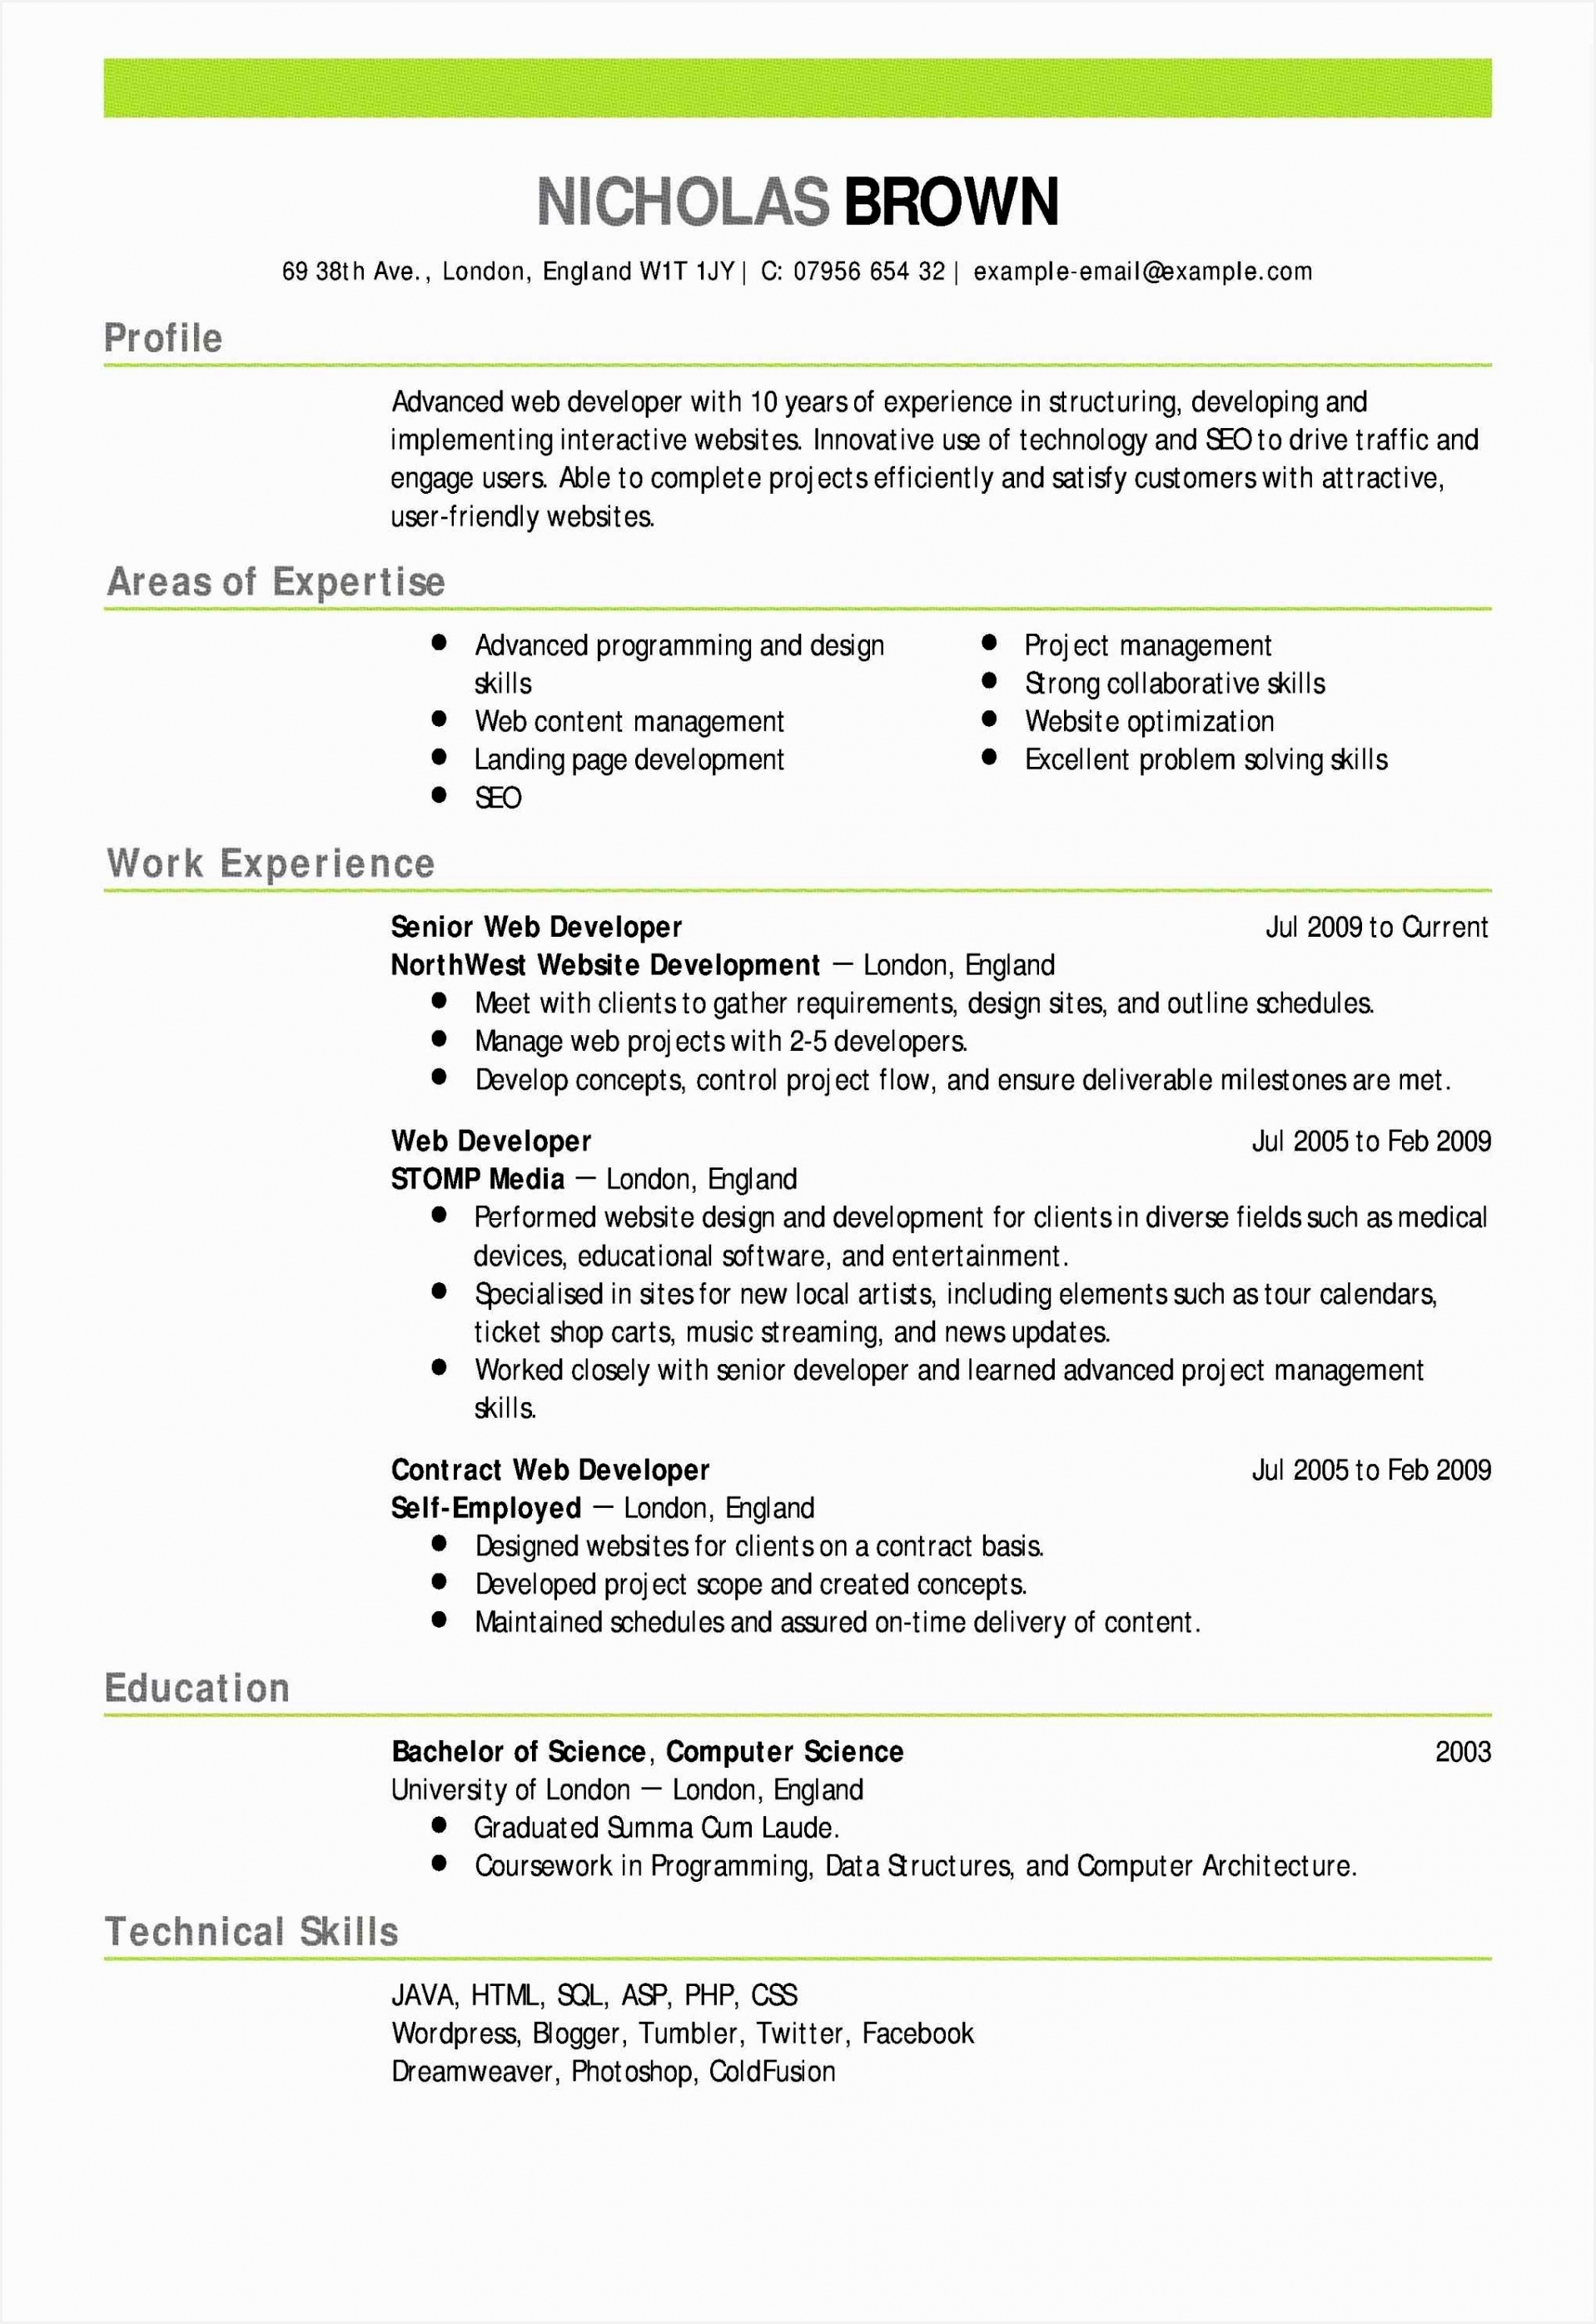 Word 2013 Resume Templates Fresh Invoice Word Template Unique Ivoice Template 0d Archives Free Resume 27911917tdbnk